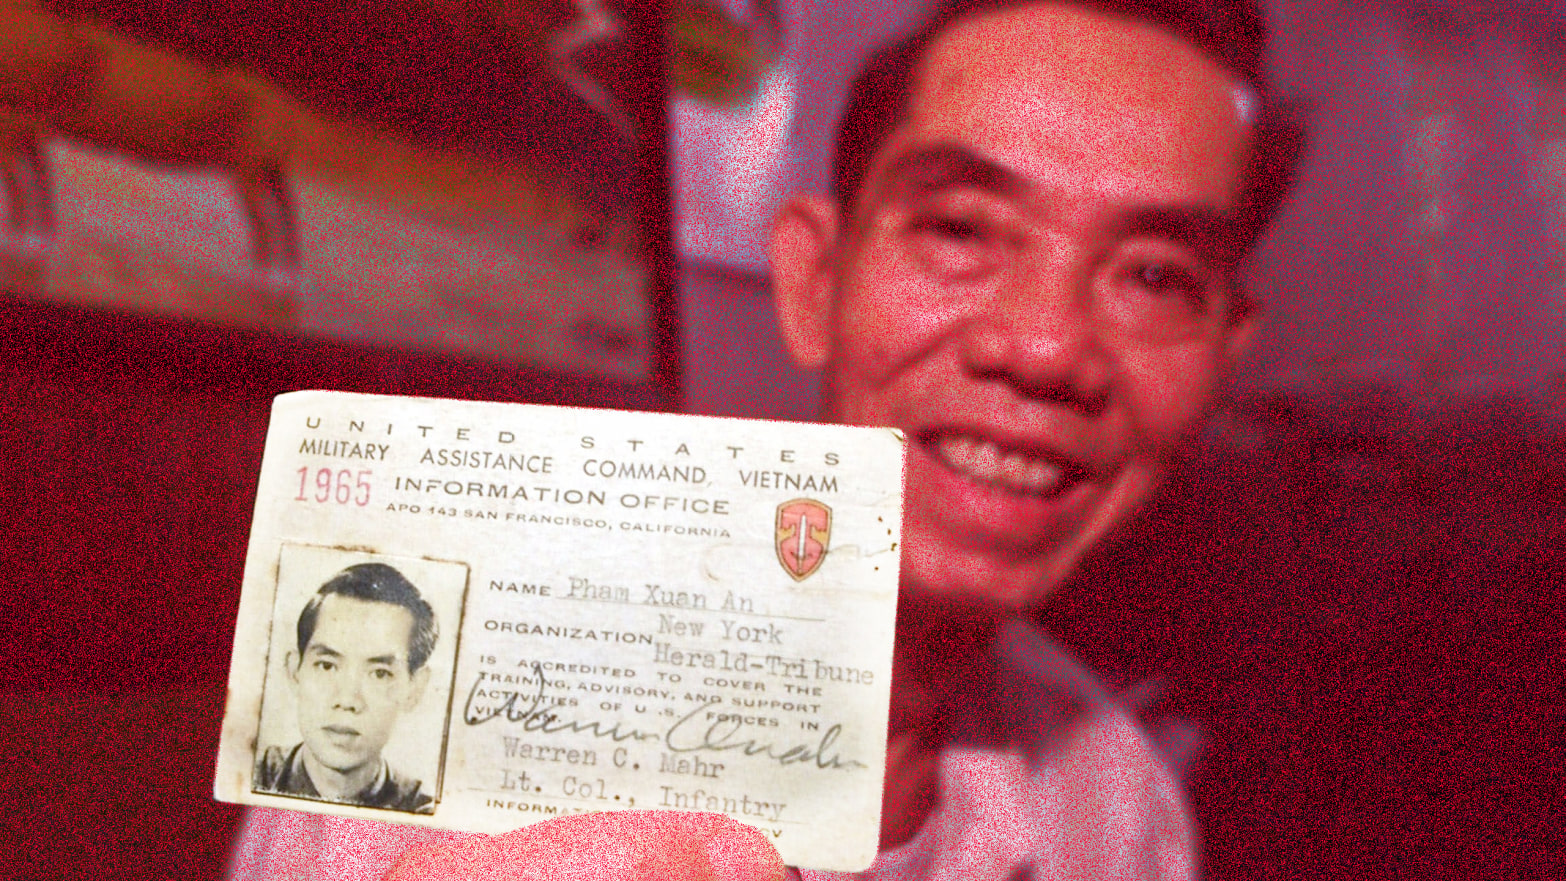 The Journalist-Viet Cong Spy Who Changed the Course of the